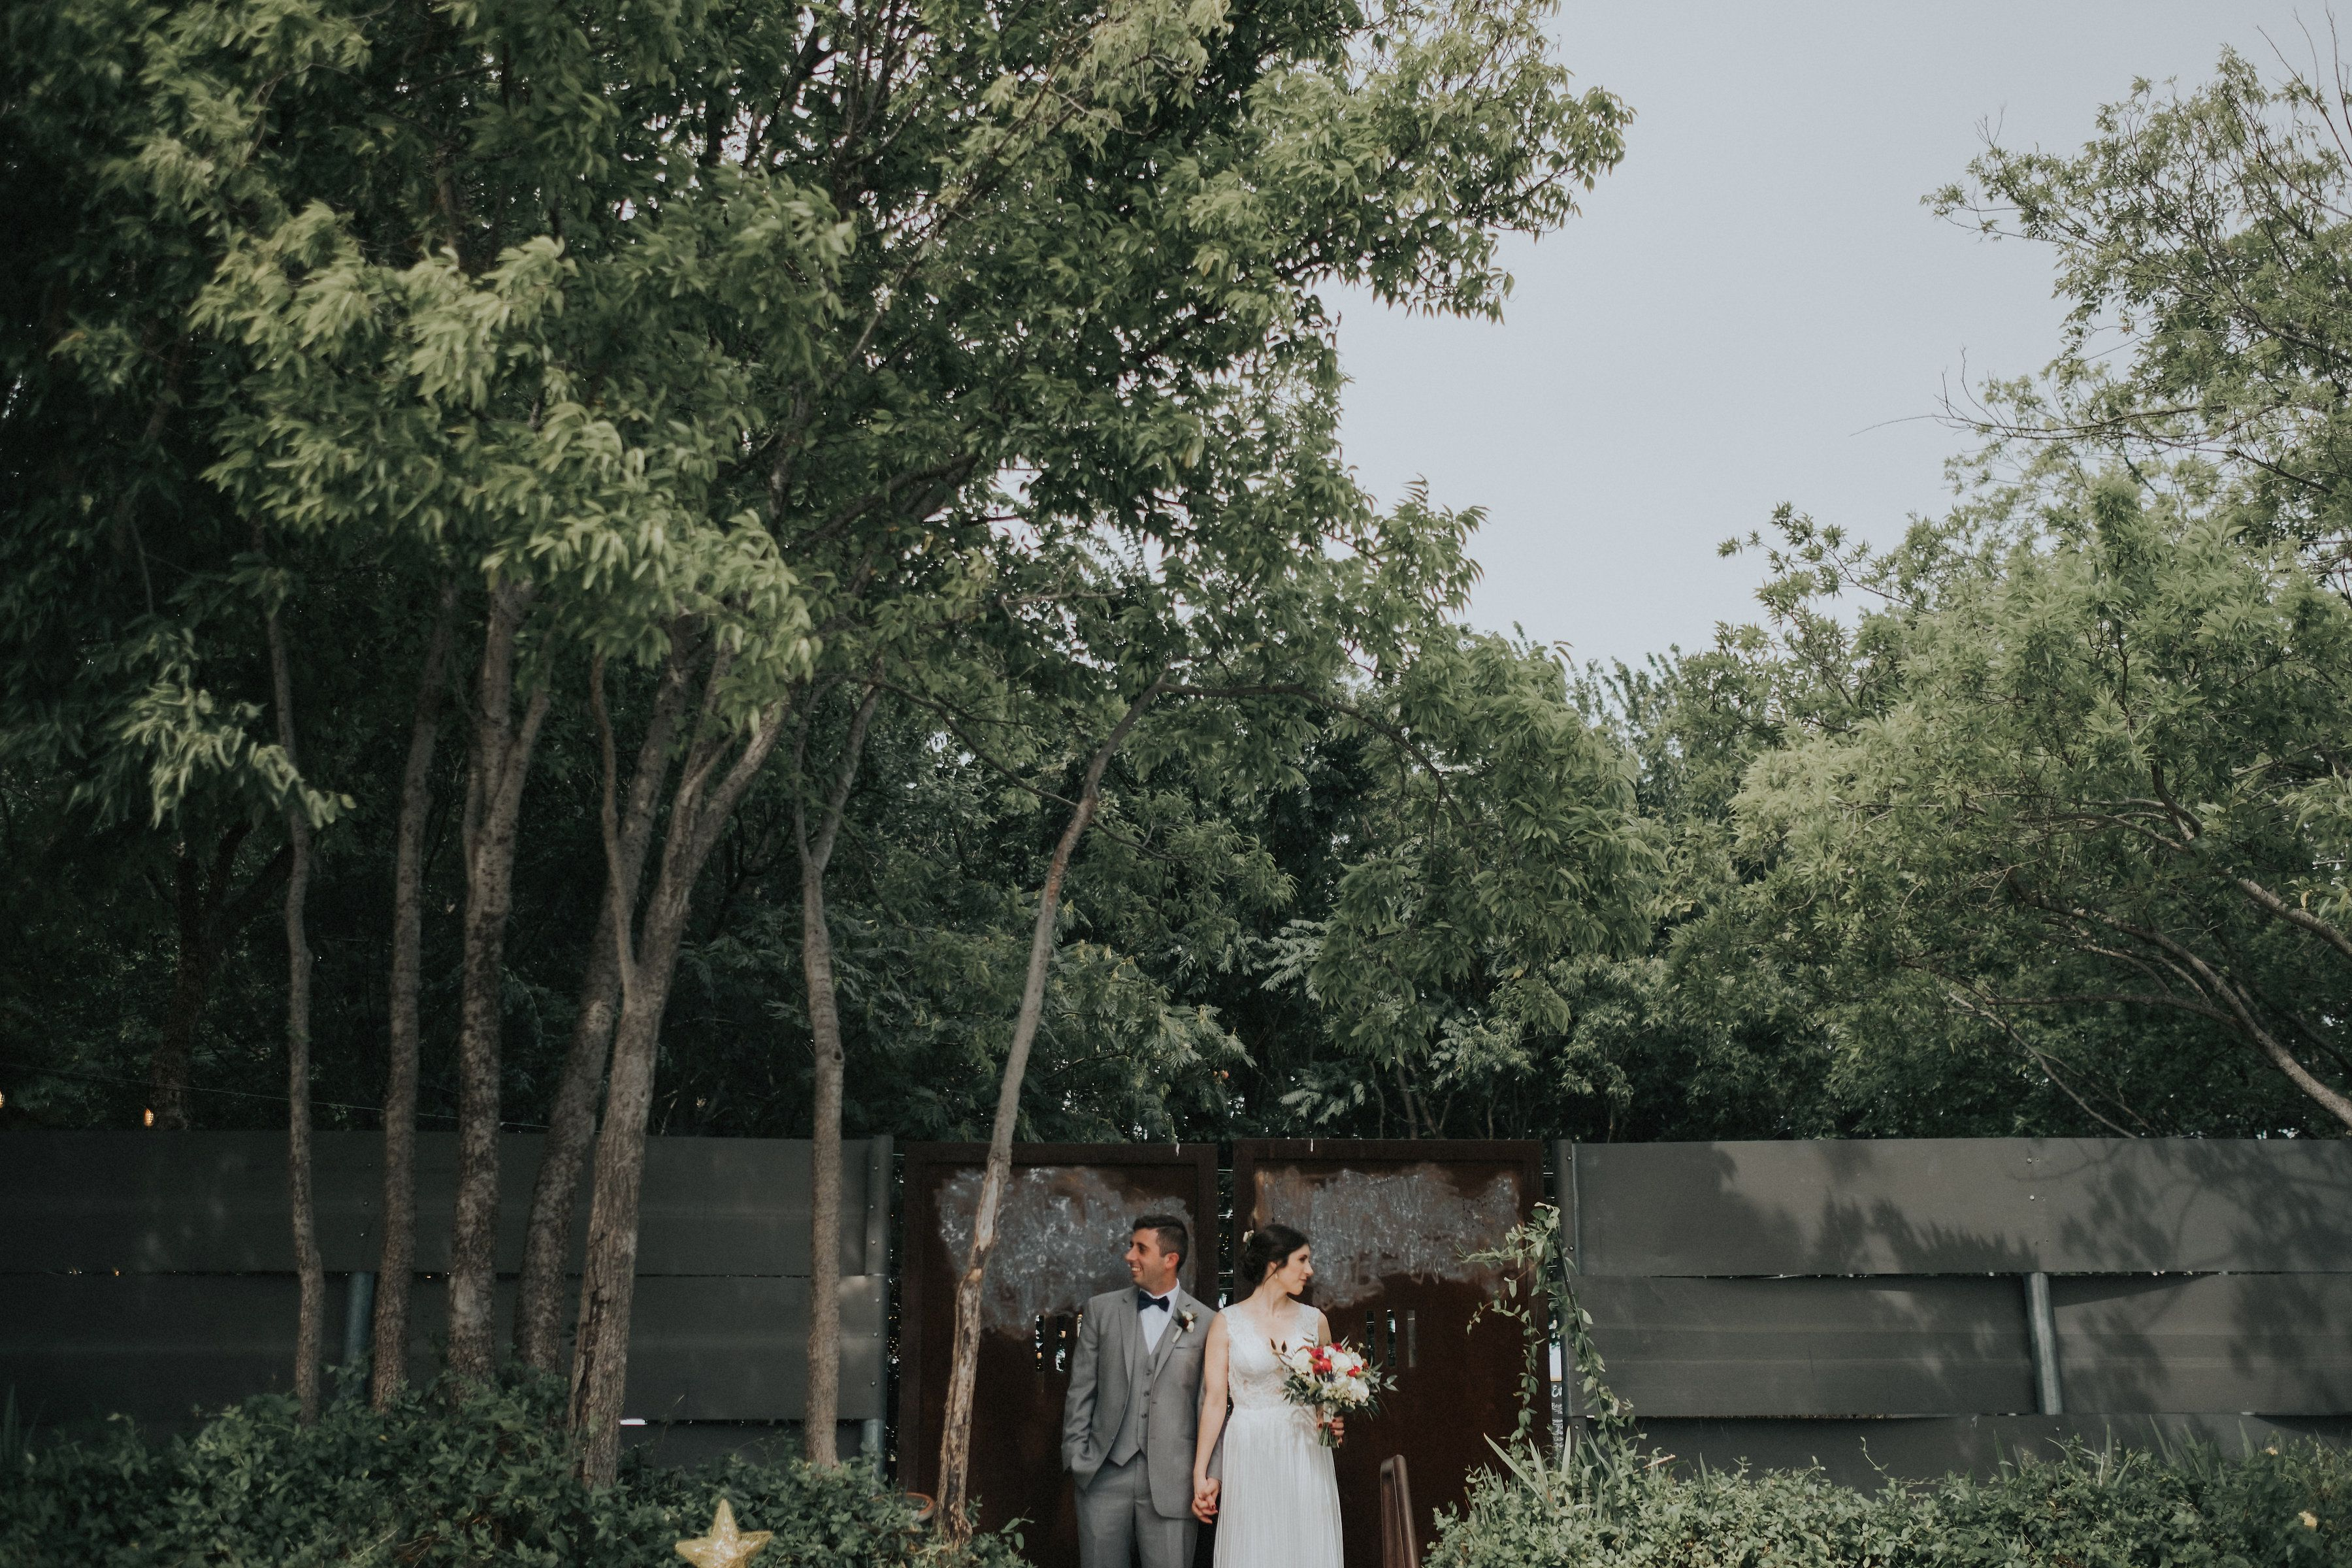 outdoor wedding venues dfw texas%0A Fort Worth Wedding Venue   Artspace      Mr and Mrs   Grant Daniels  Photography  artspace